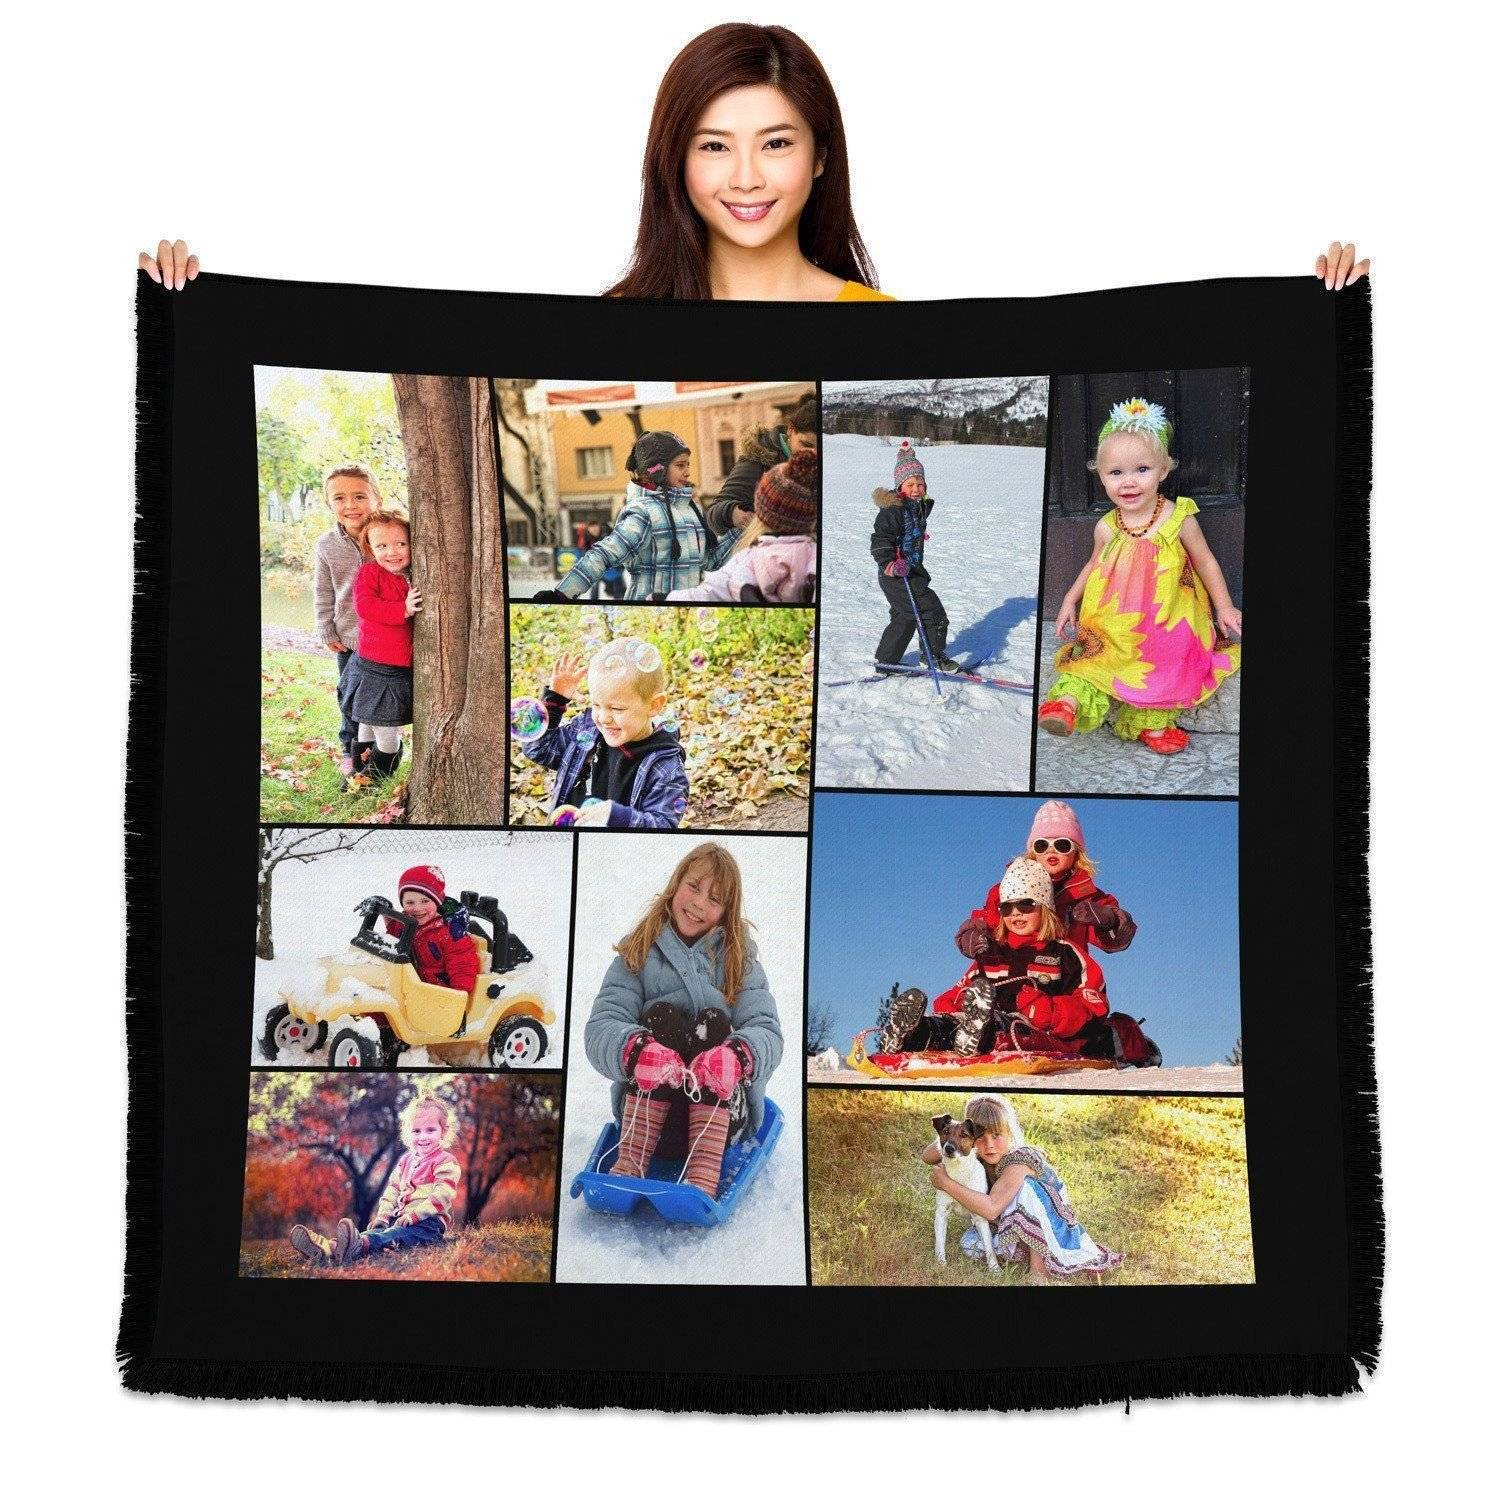 "HD Woven Full Service Collage Blanket 60"" x 54"" (Medium)"